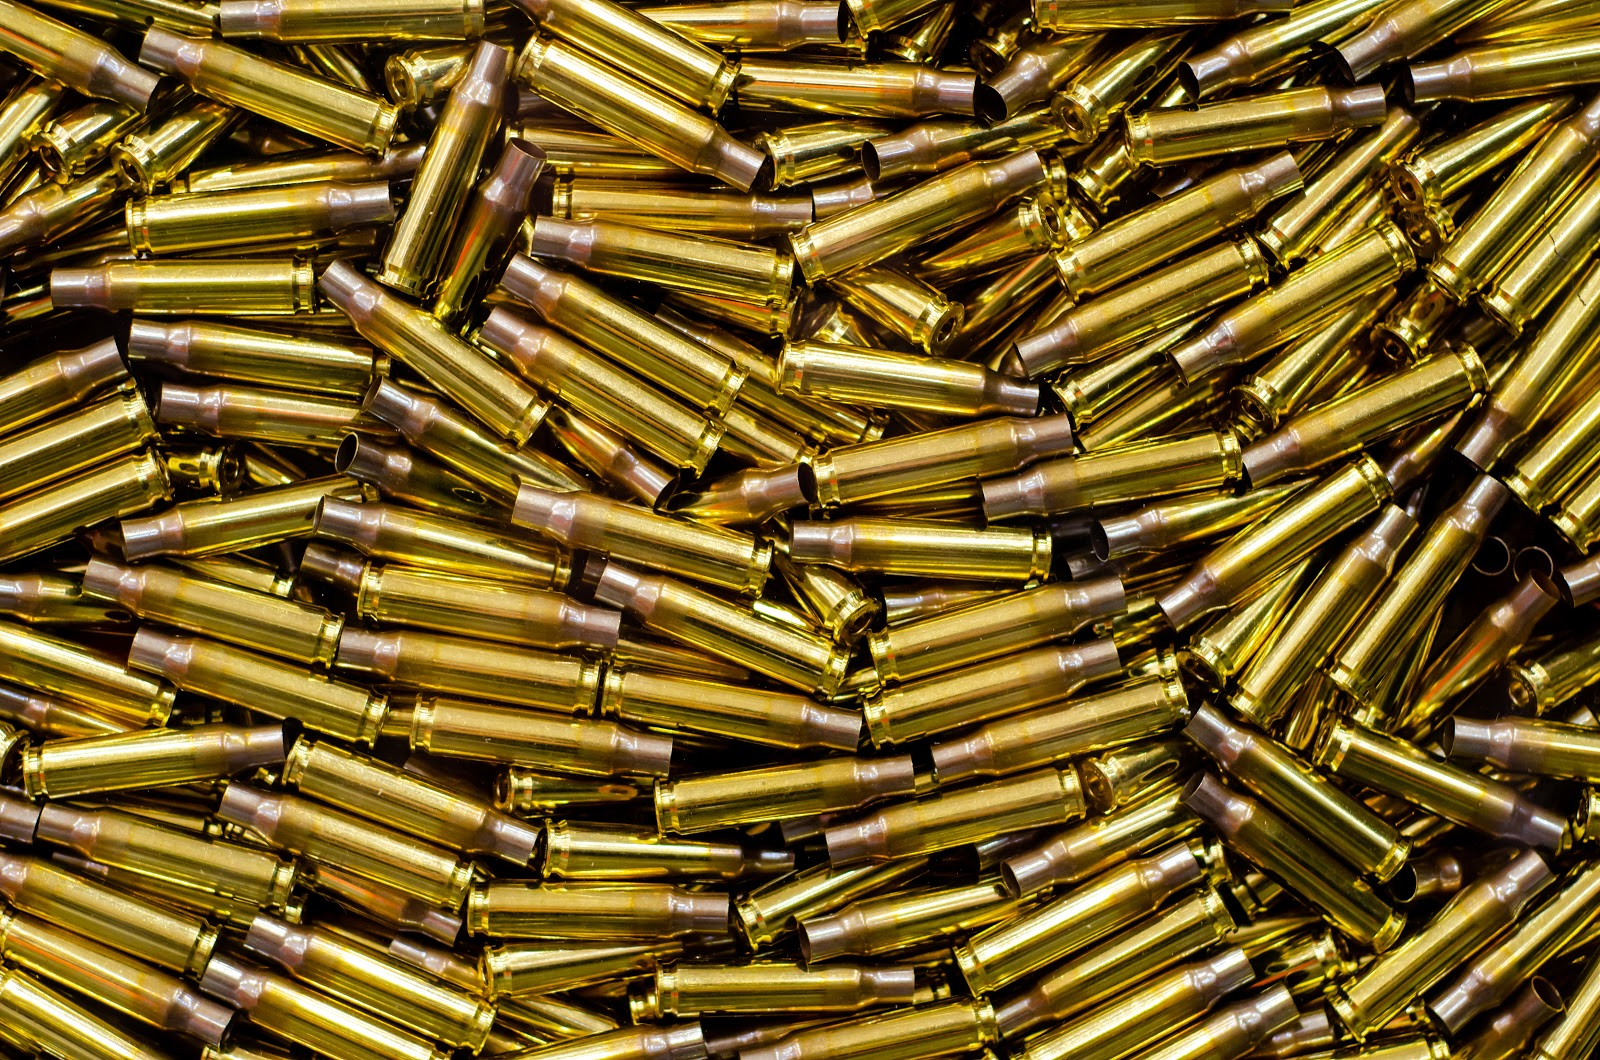 a pile of used or empty bullet casings